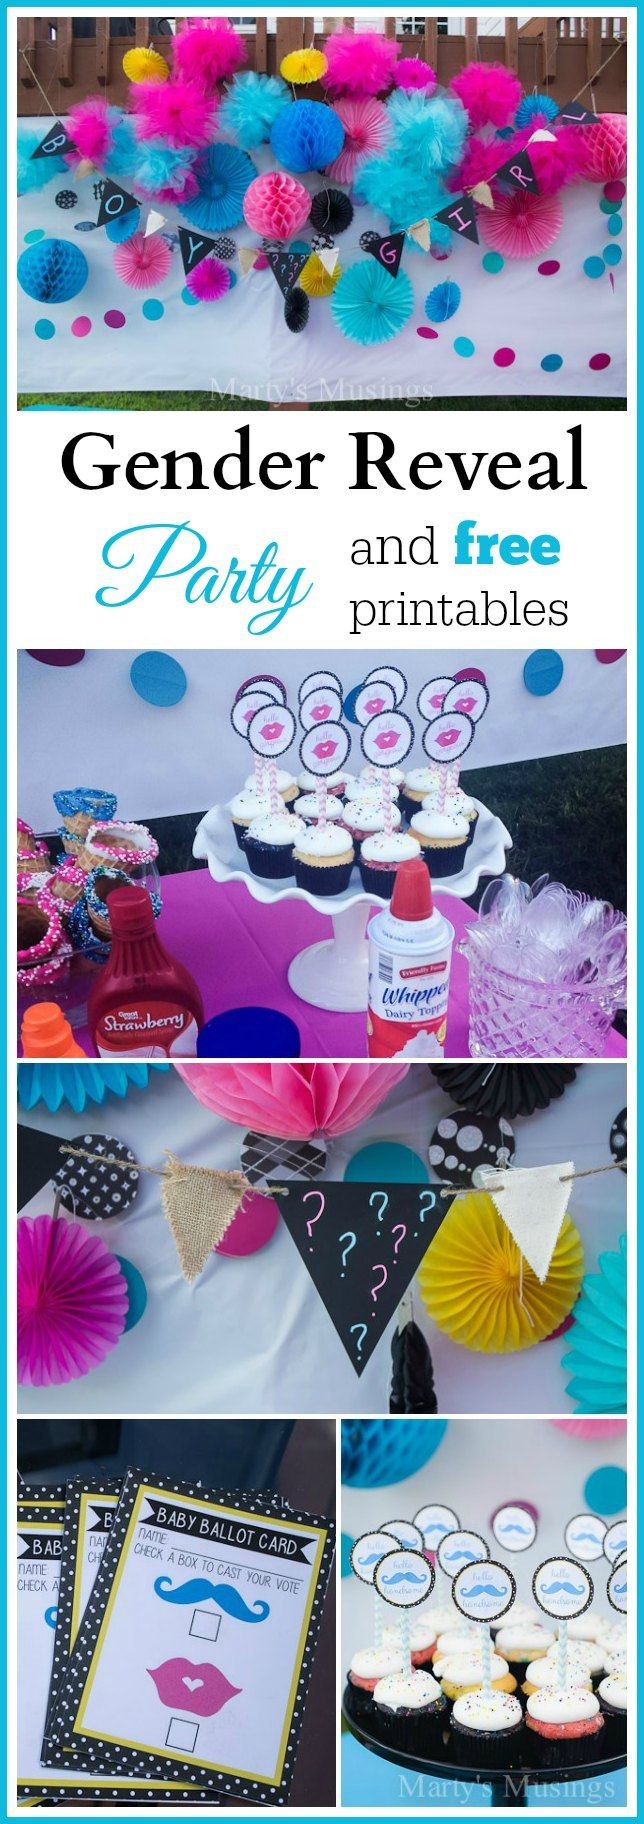 All the details and practical tips on throwing a precious baby gender reveal party. Includes free printables with ideas for food, decor and reveal.